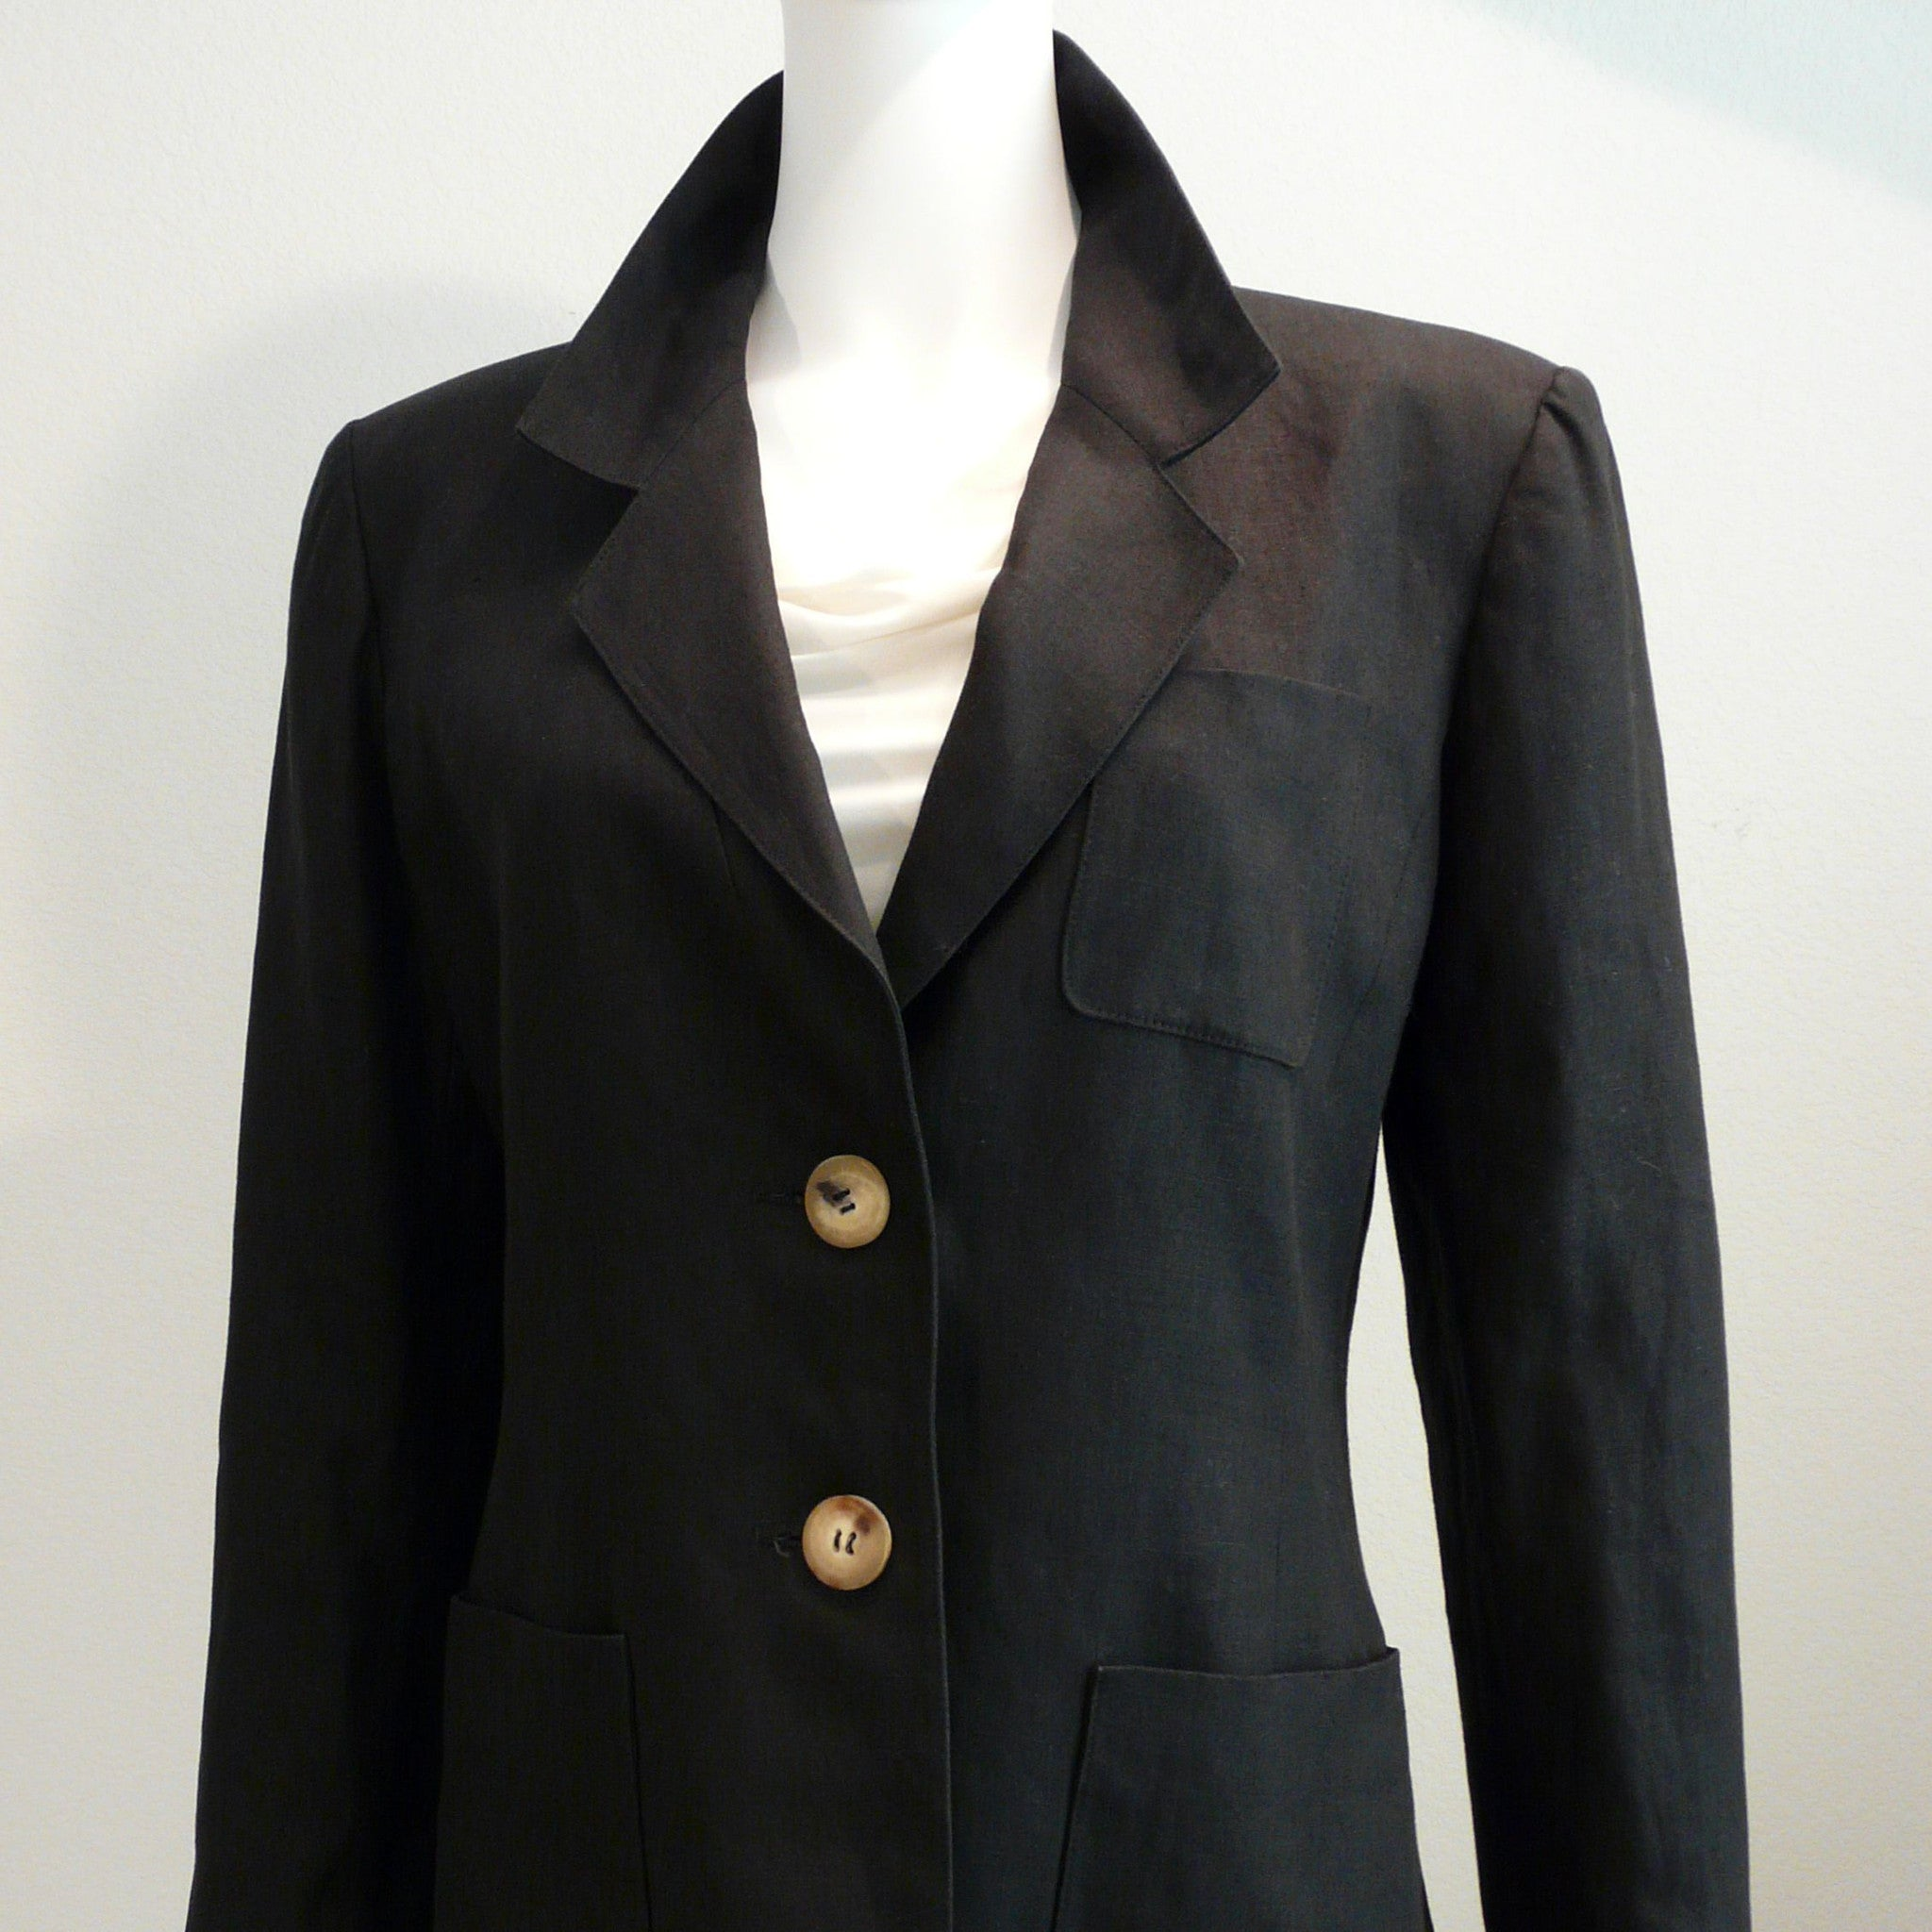 Hermes Paris Black Linen Jacket